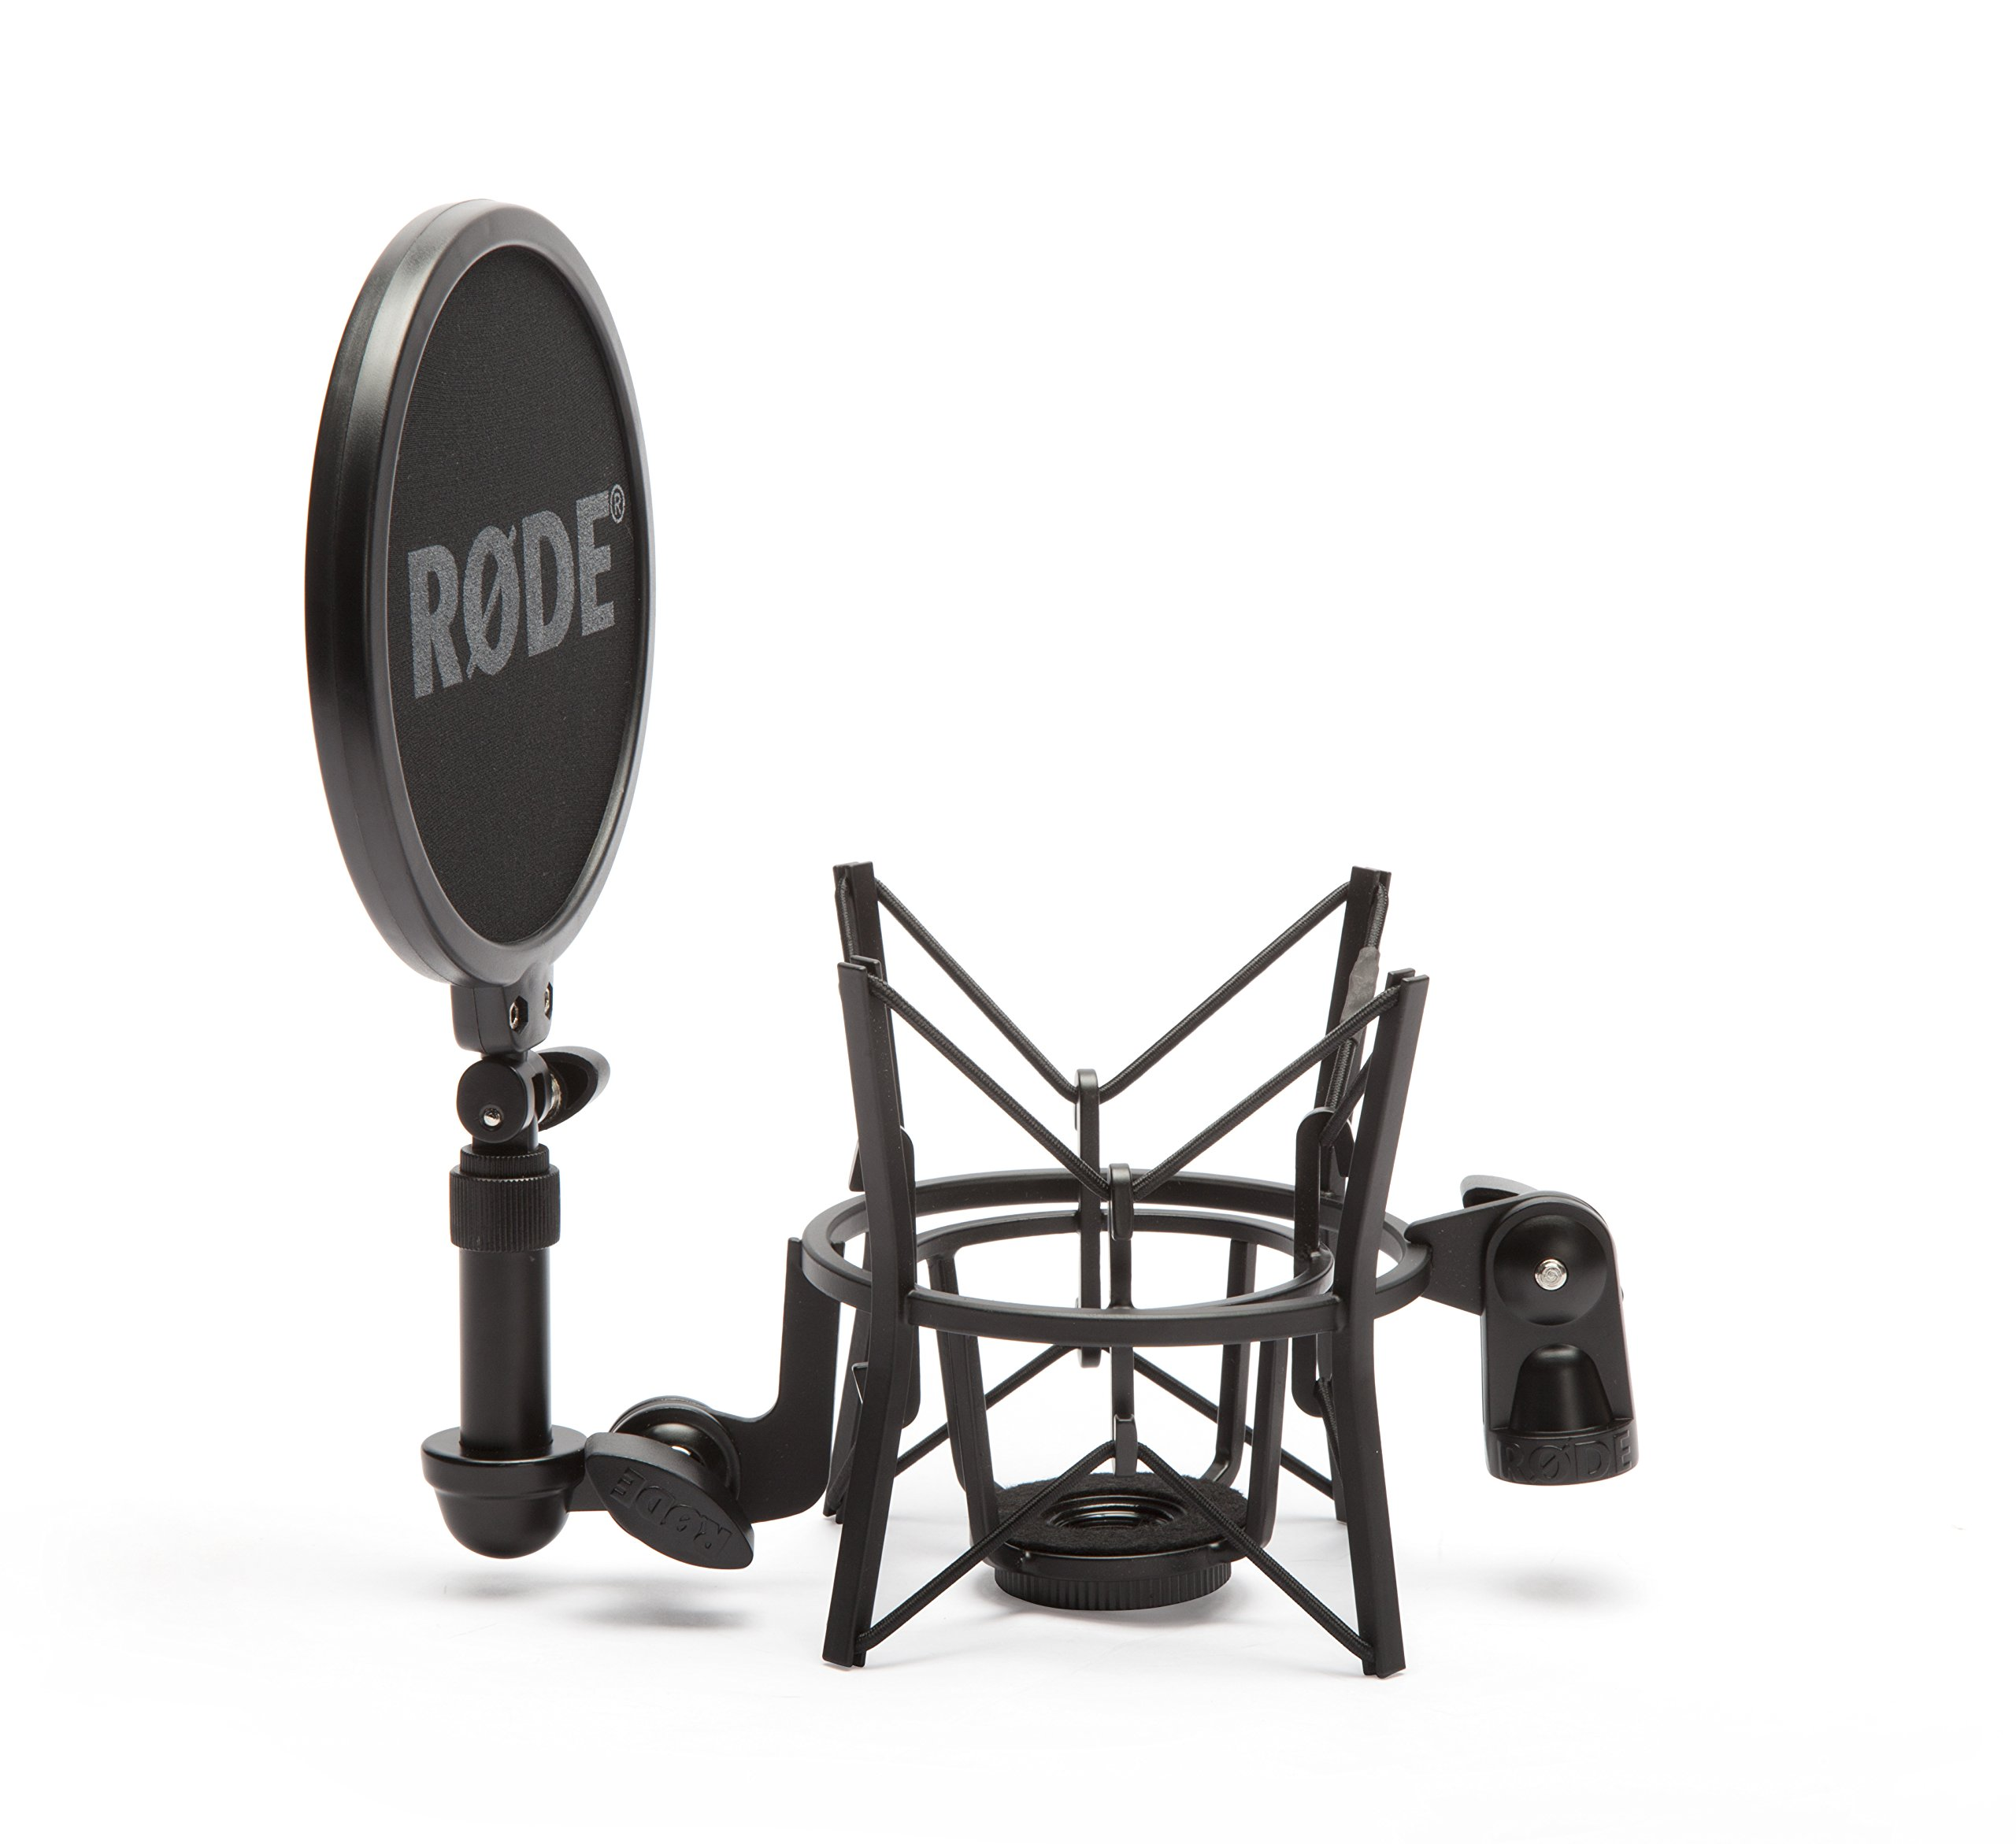 Rode SM6 Microphone Shock Mount with Integrated Pop Shield by Rode